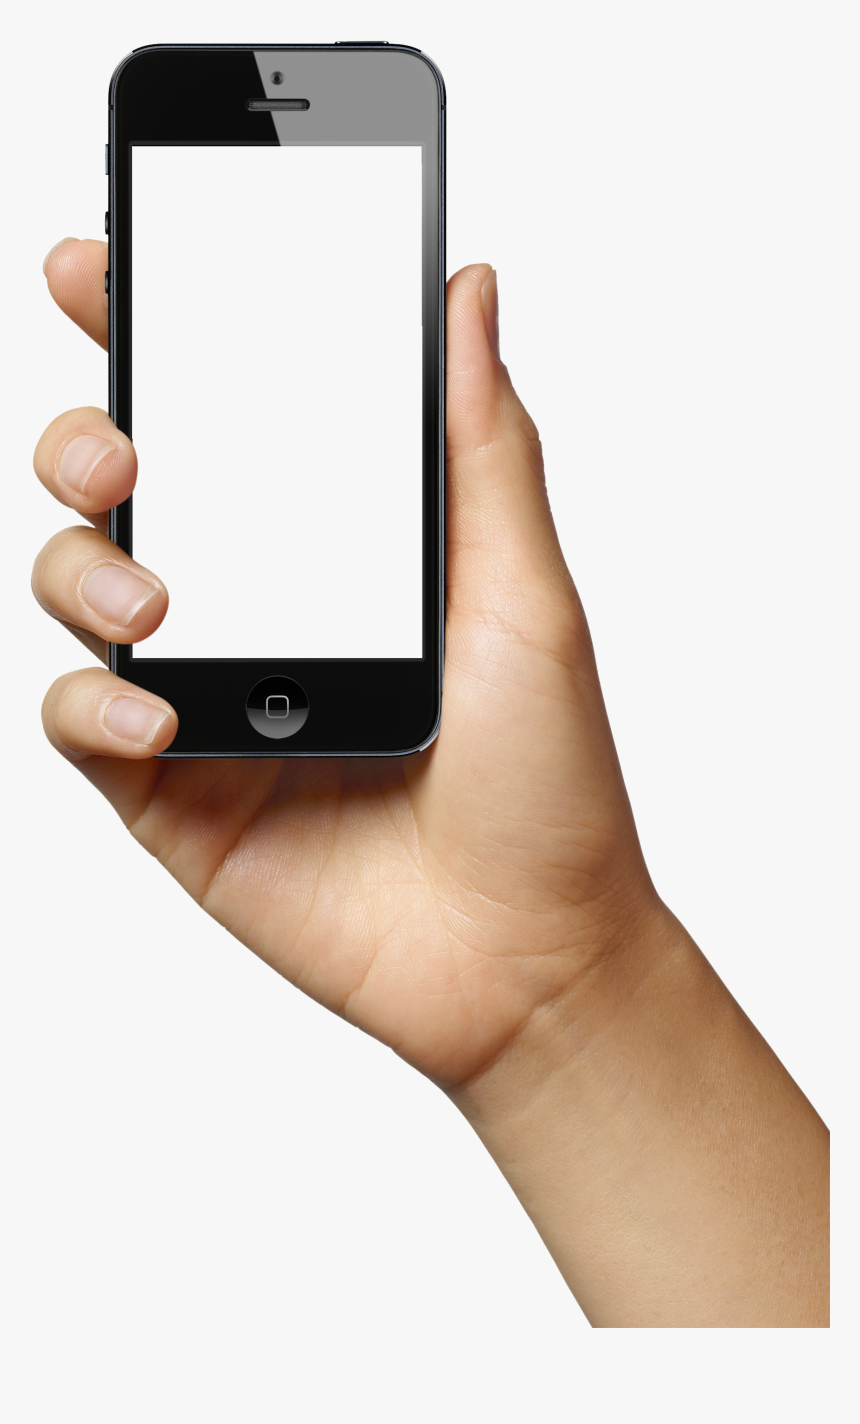 Phone In Hand Png Image Hand Holding Phone Png Transparent Png Kindpng Hand png cliparts, all these png images has no background, free & unlimited downloads. hand holding phone png transparent png